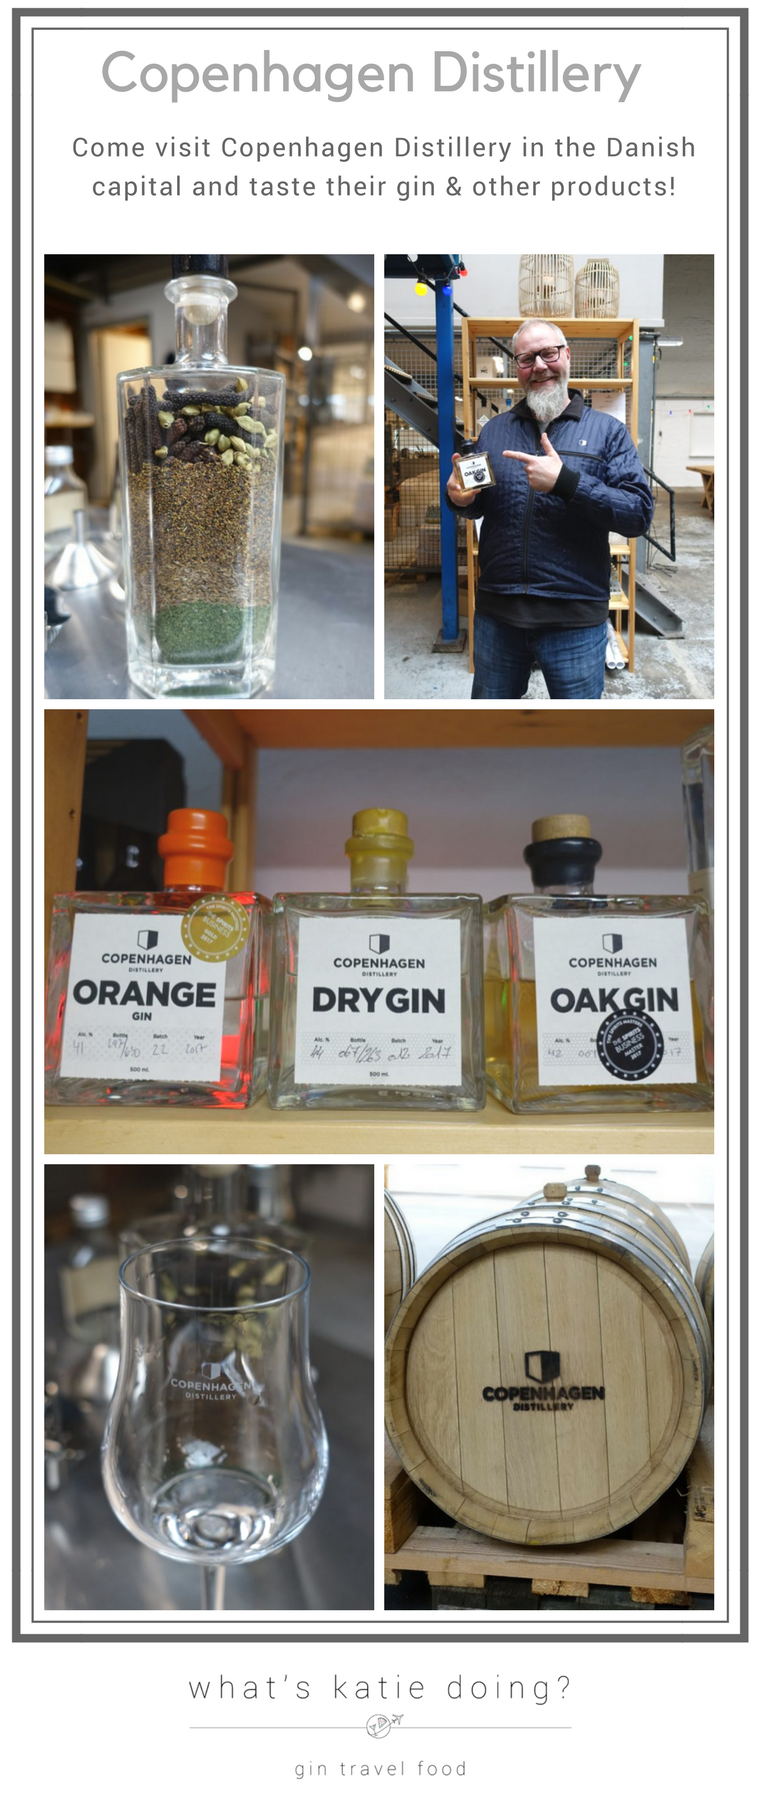 Pinterest image for Copenhagen Distillery visit